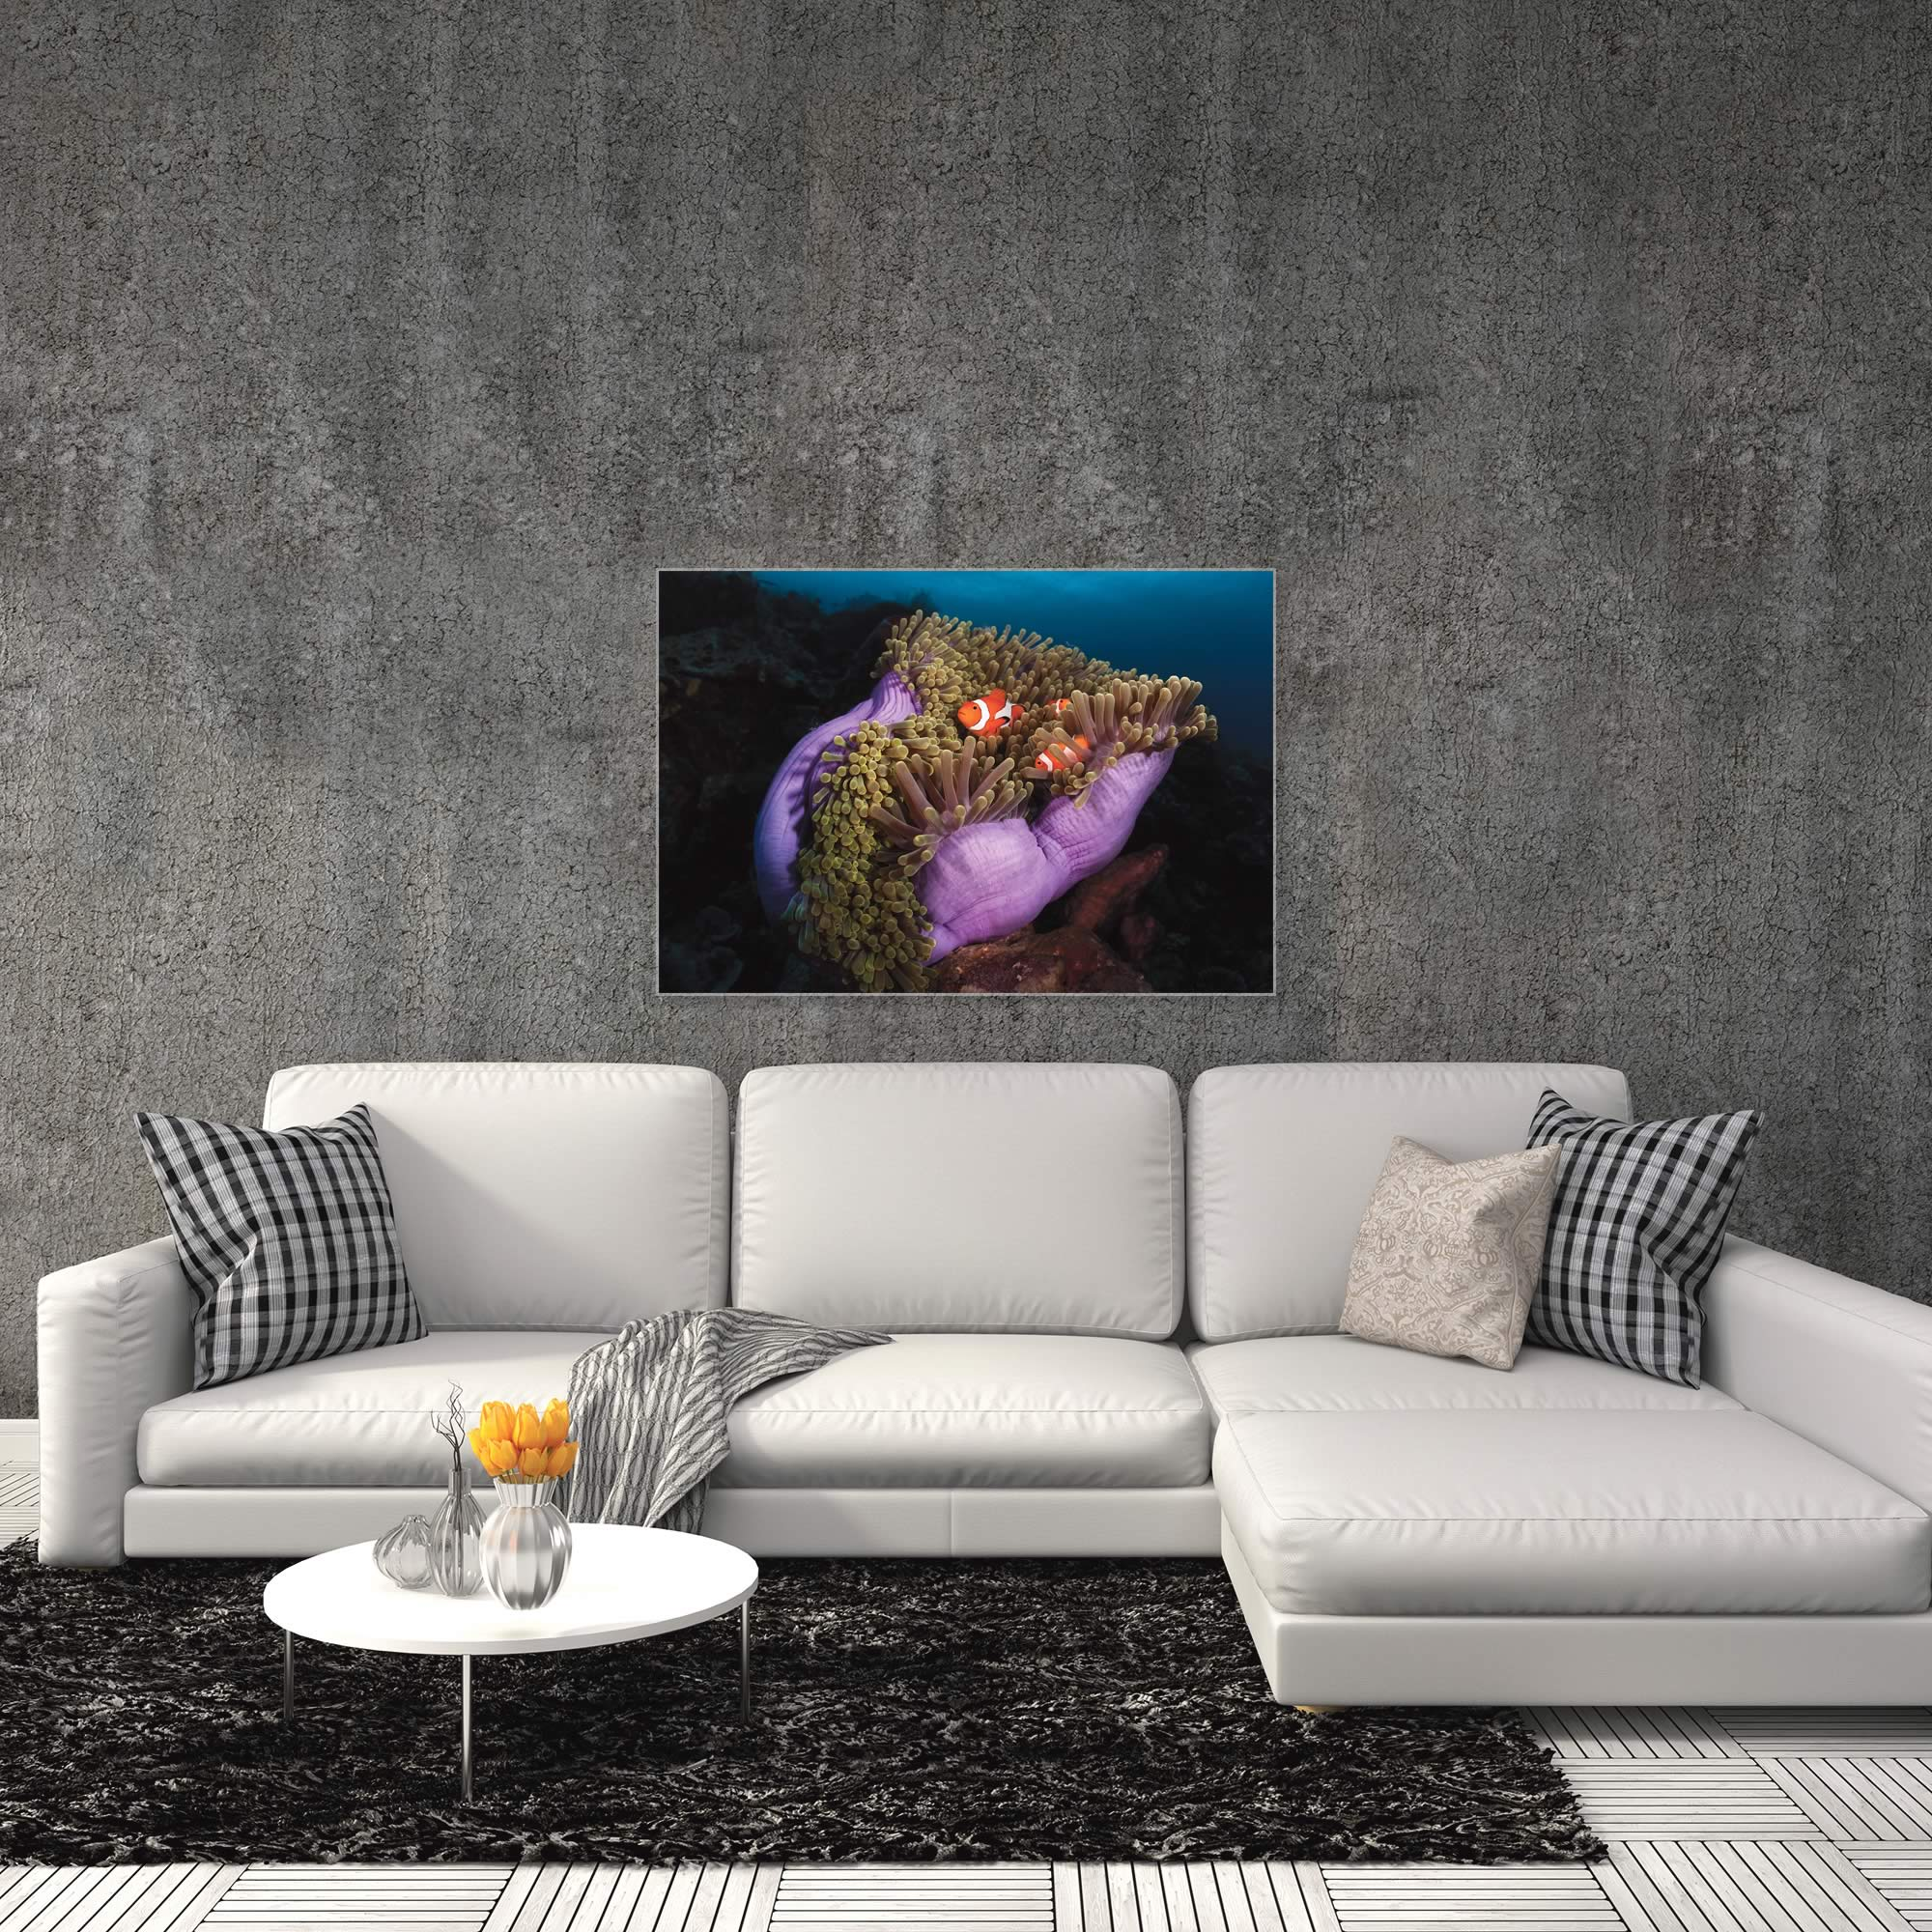 Clown Fish Anemone by Marco Fierli - Coastal Decor on Metal or Acrylic - Alternate View 3